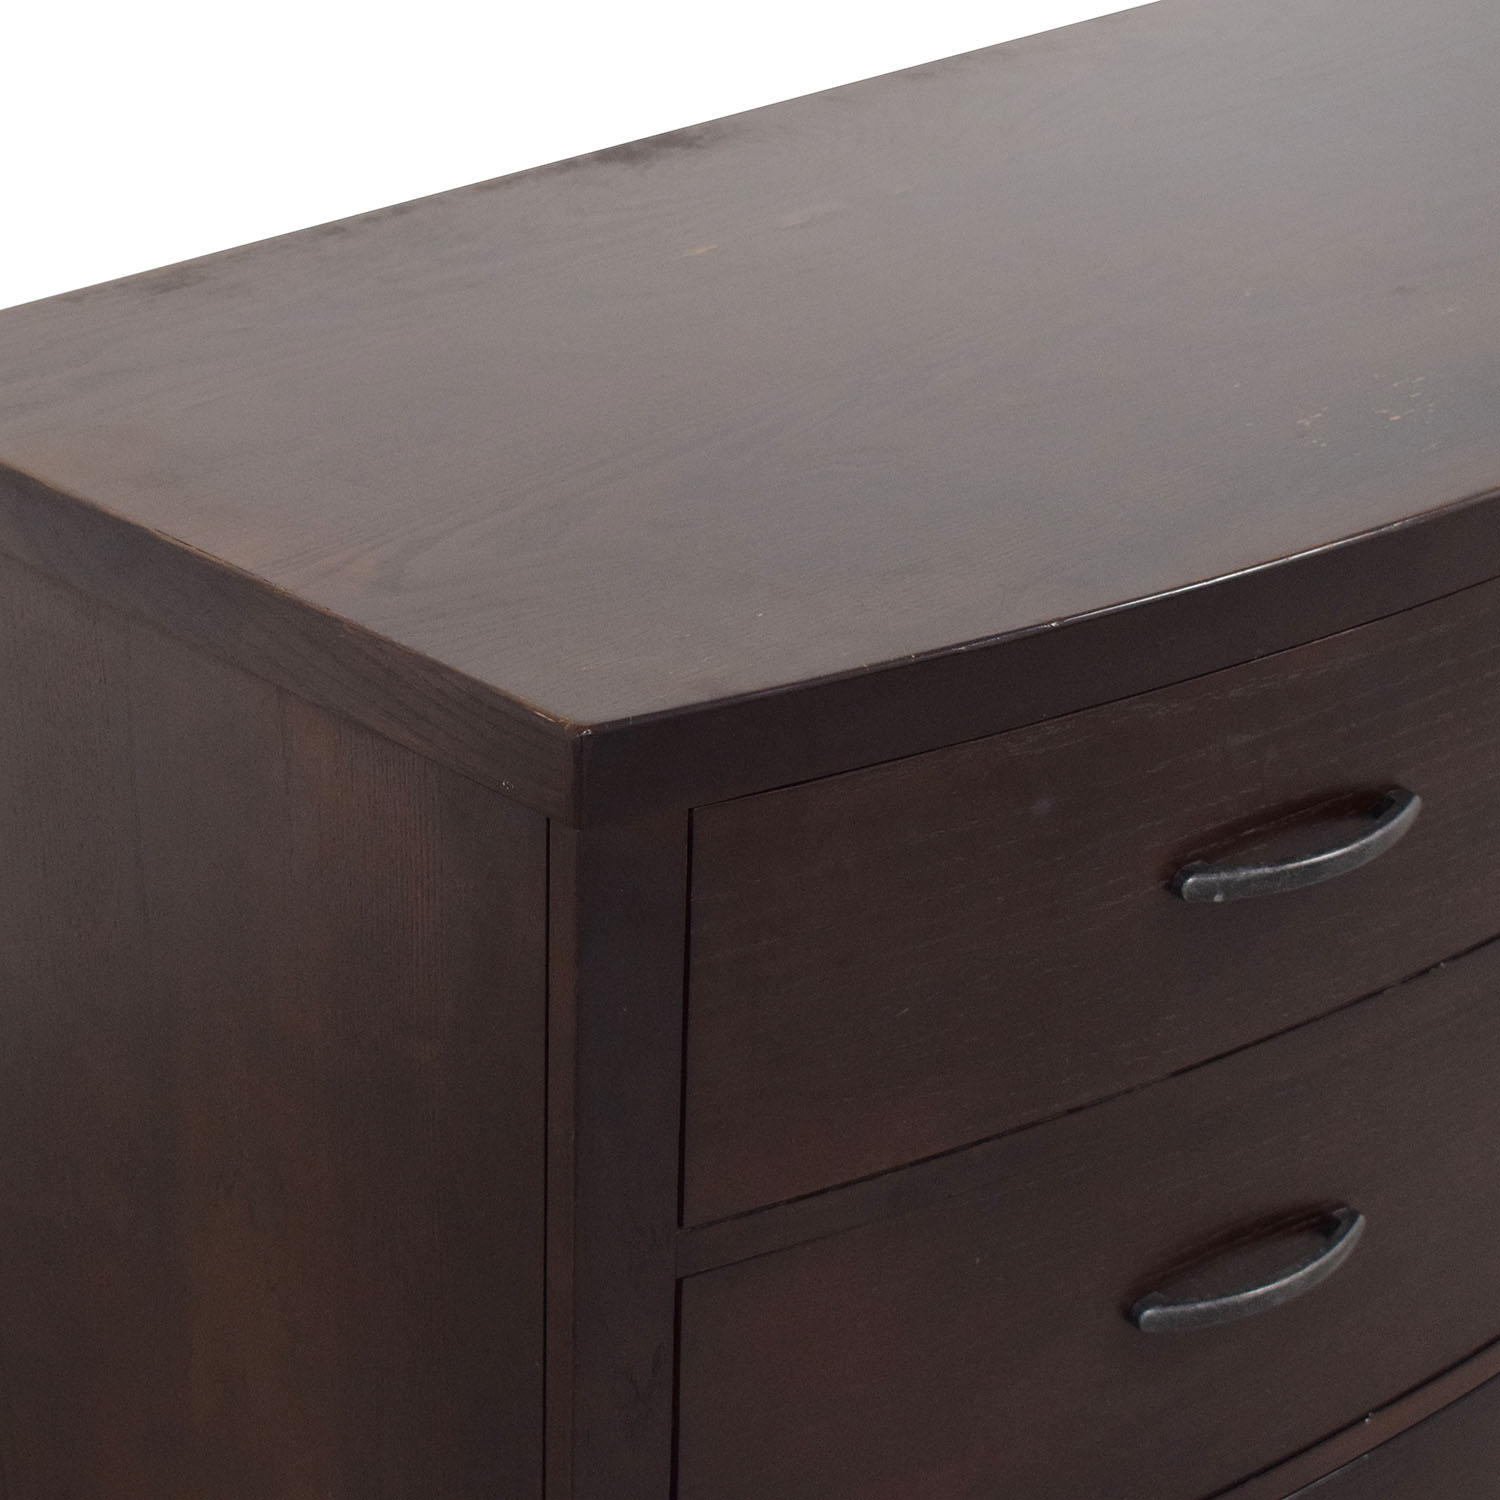 Ethan Allen Ethan Allen Bowed Front Three Drawer Dresser on sale